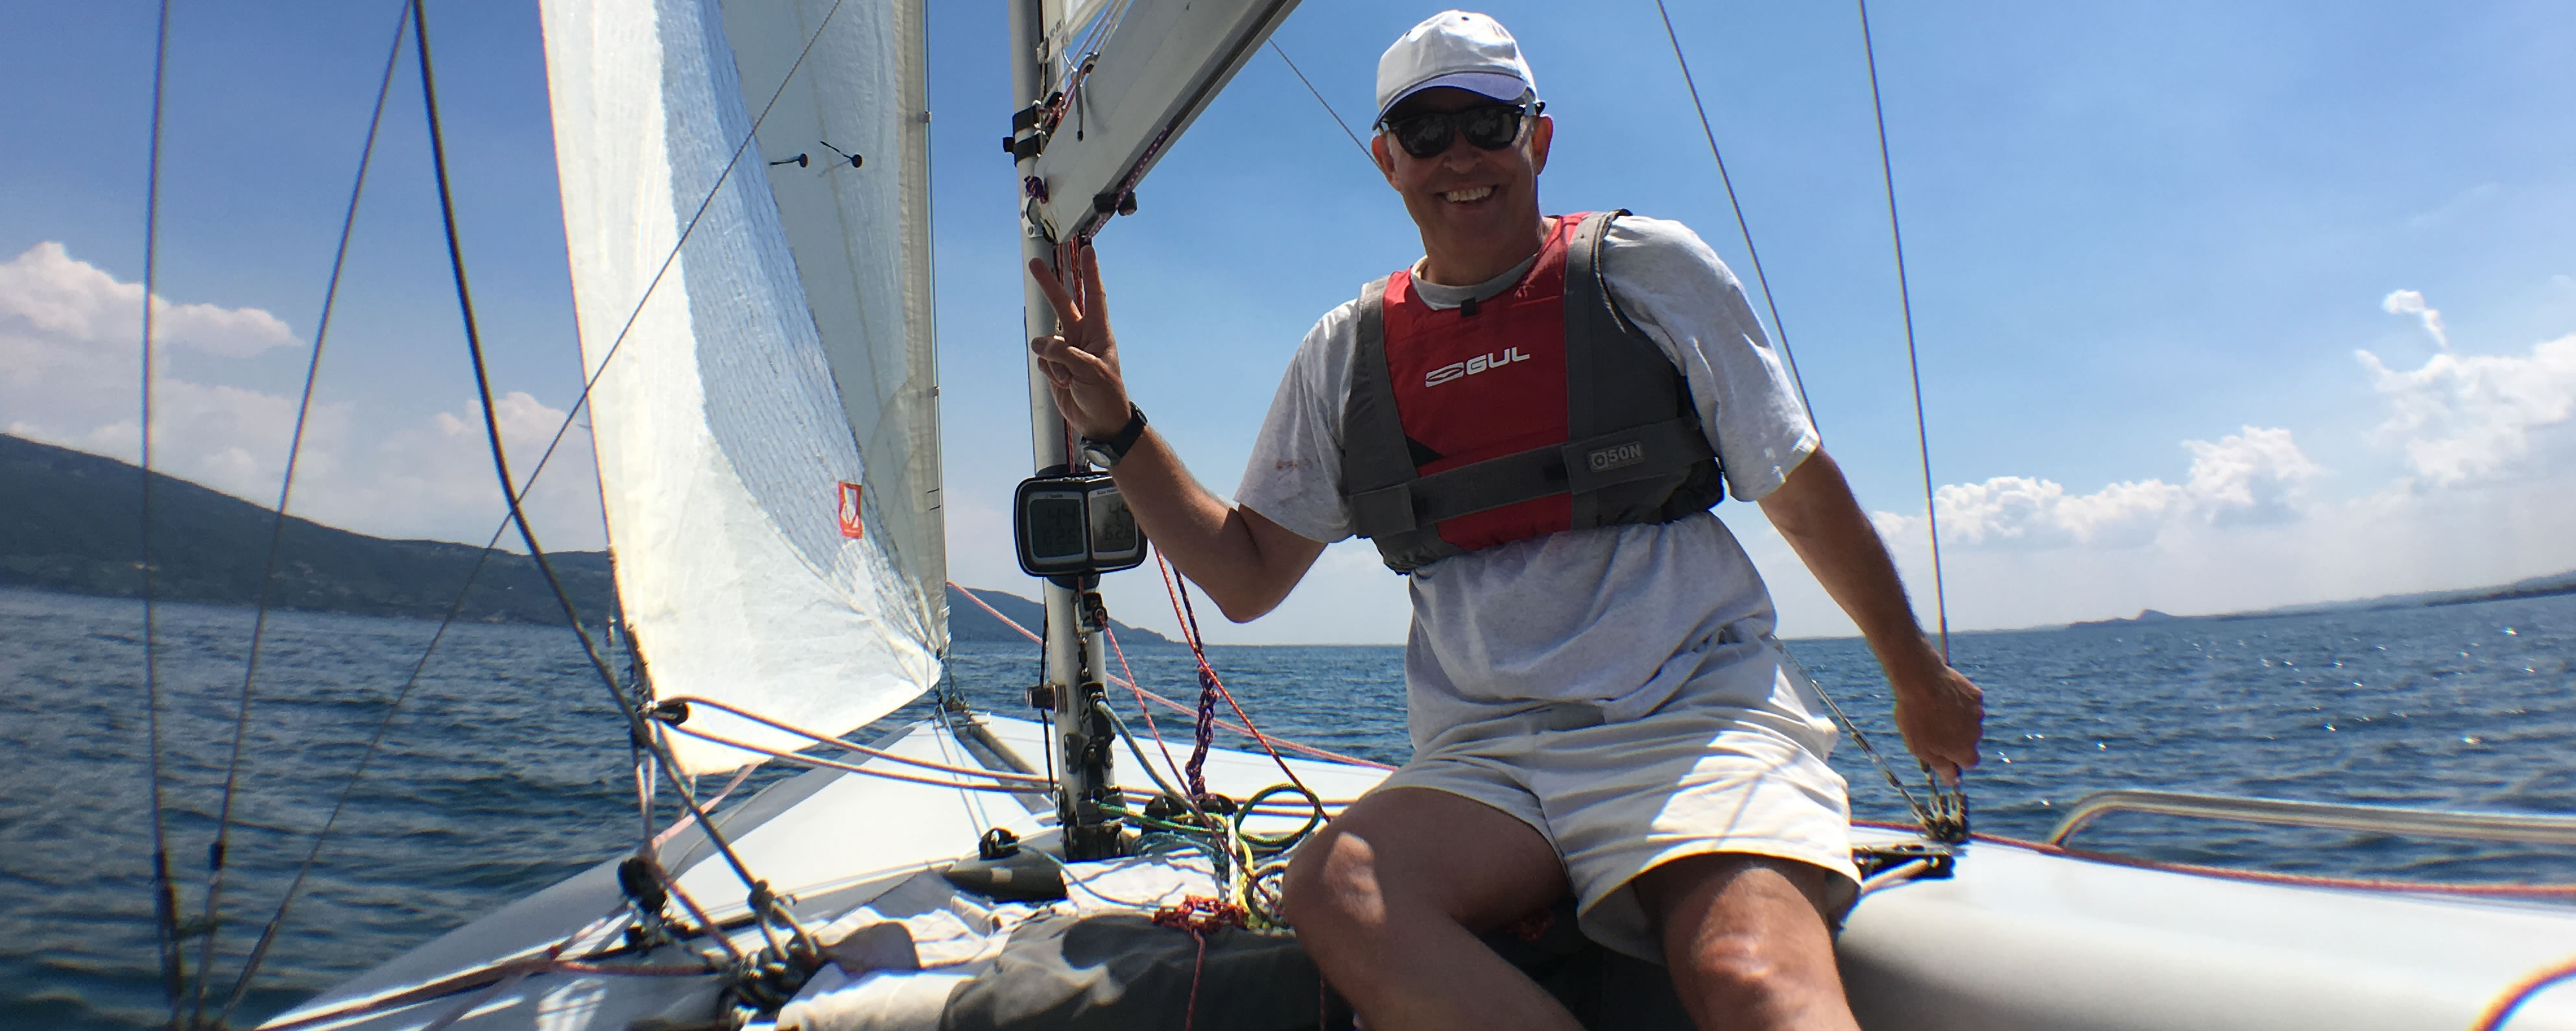 Sailing holiday keelboat course